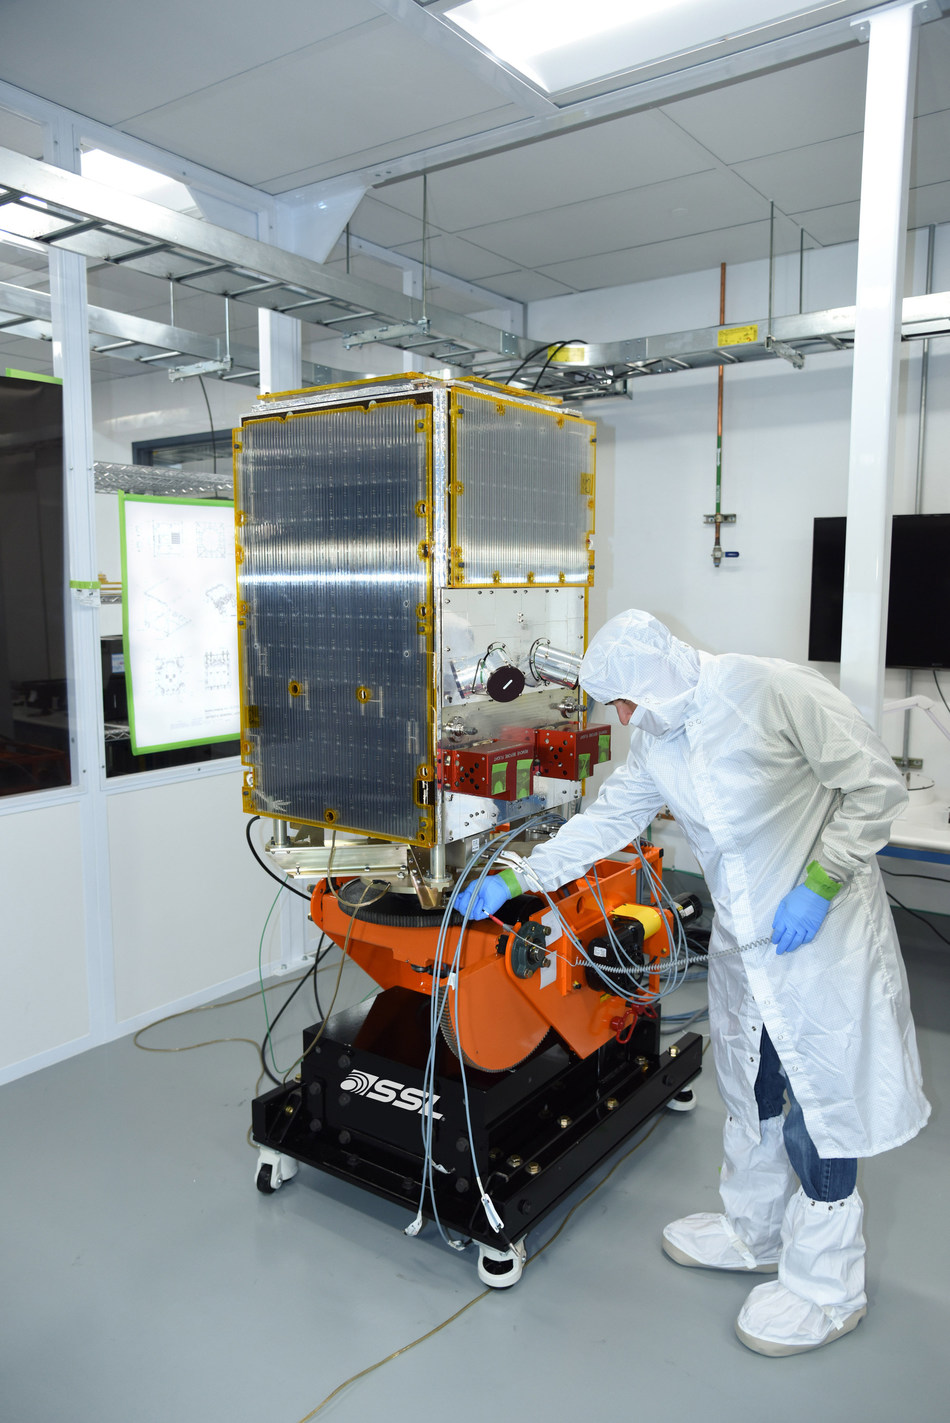 Six SSL-built Earth imaging small satellites for Planet were successfully launched. (CNW Group/SSL)